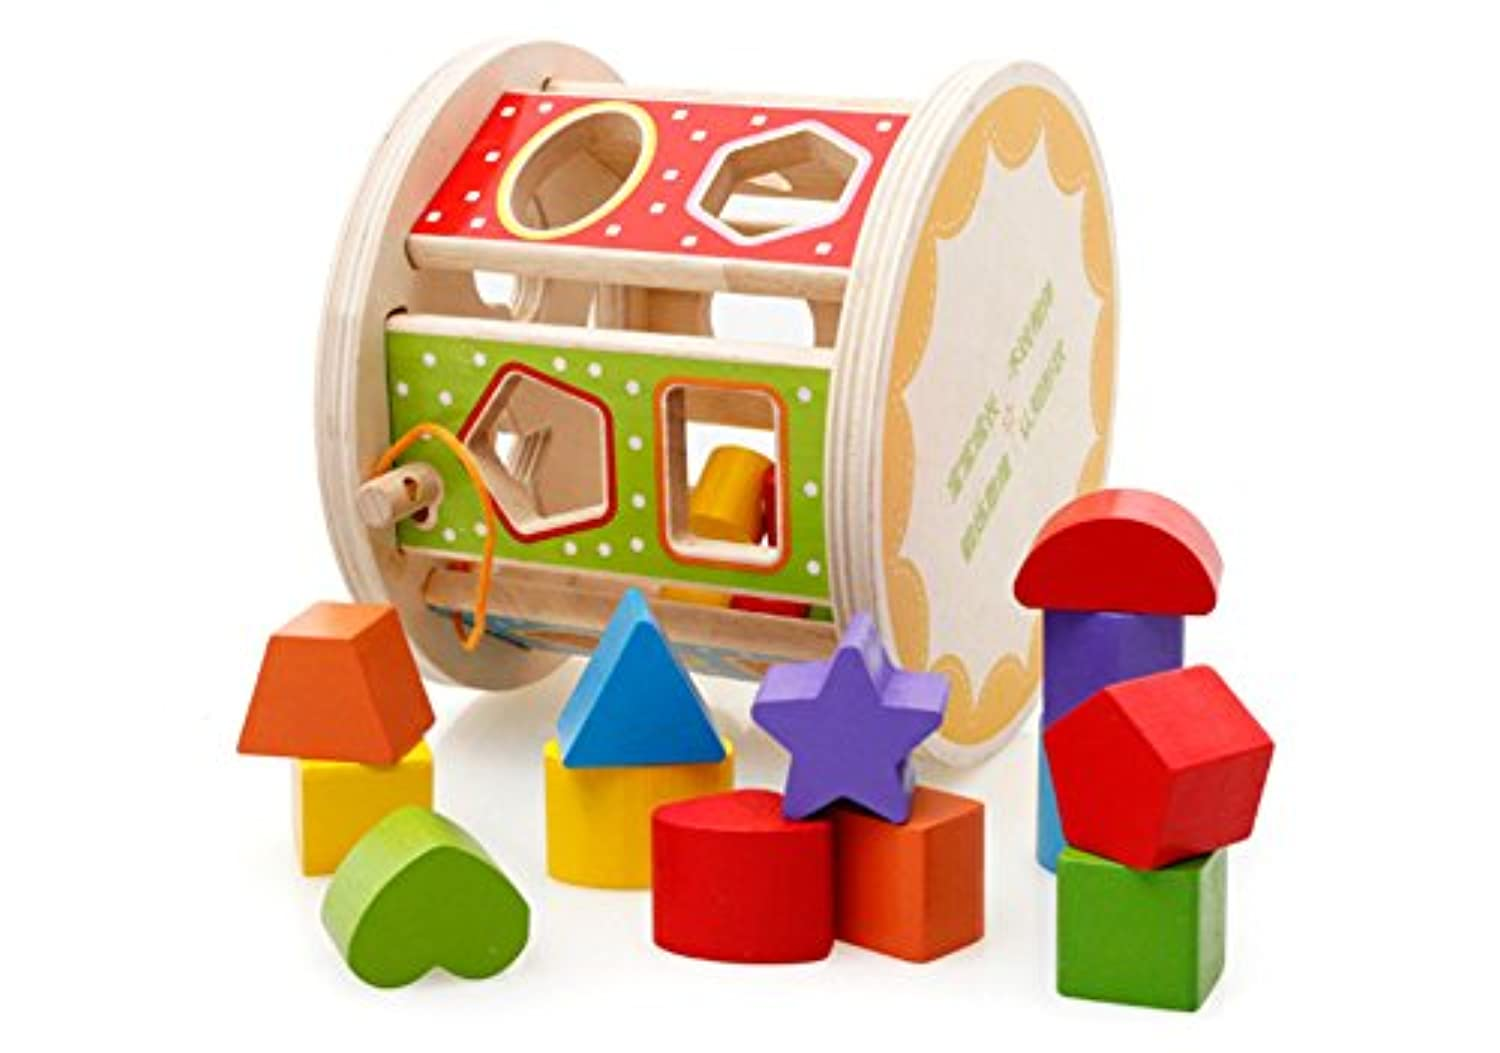 VolksRose Wooden Baby Shape Colour Recognition Intelligence Sorter - Cylinder Shaped Early Education Shape Sorter . and Up Child - Perfect Christmas Gift for Your Kids